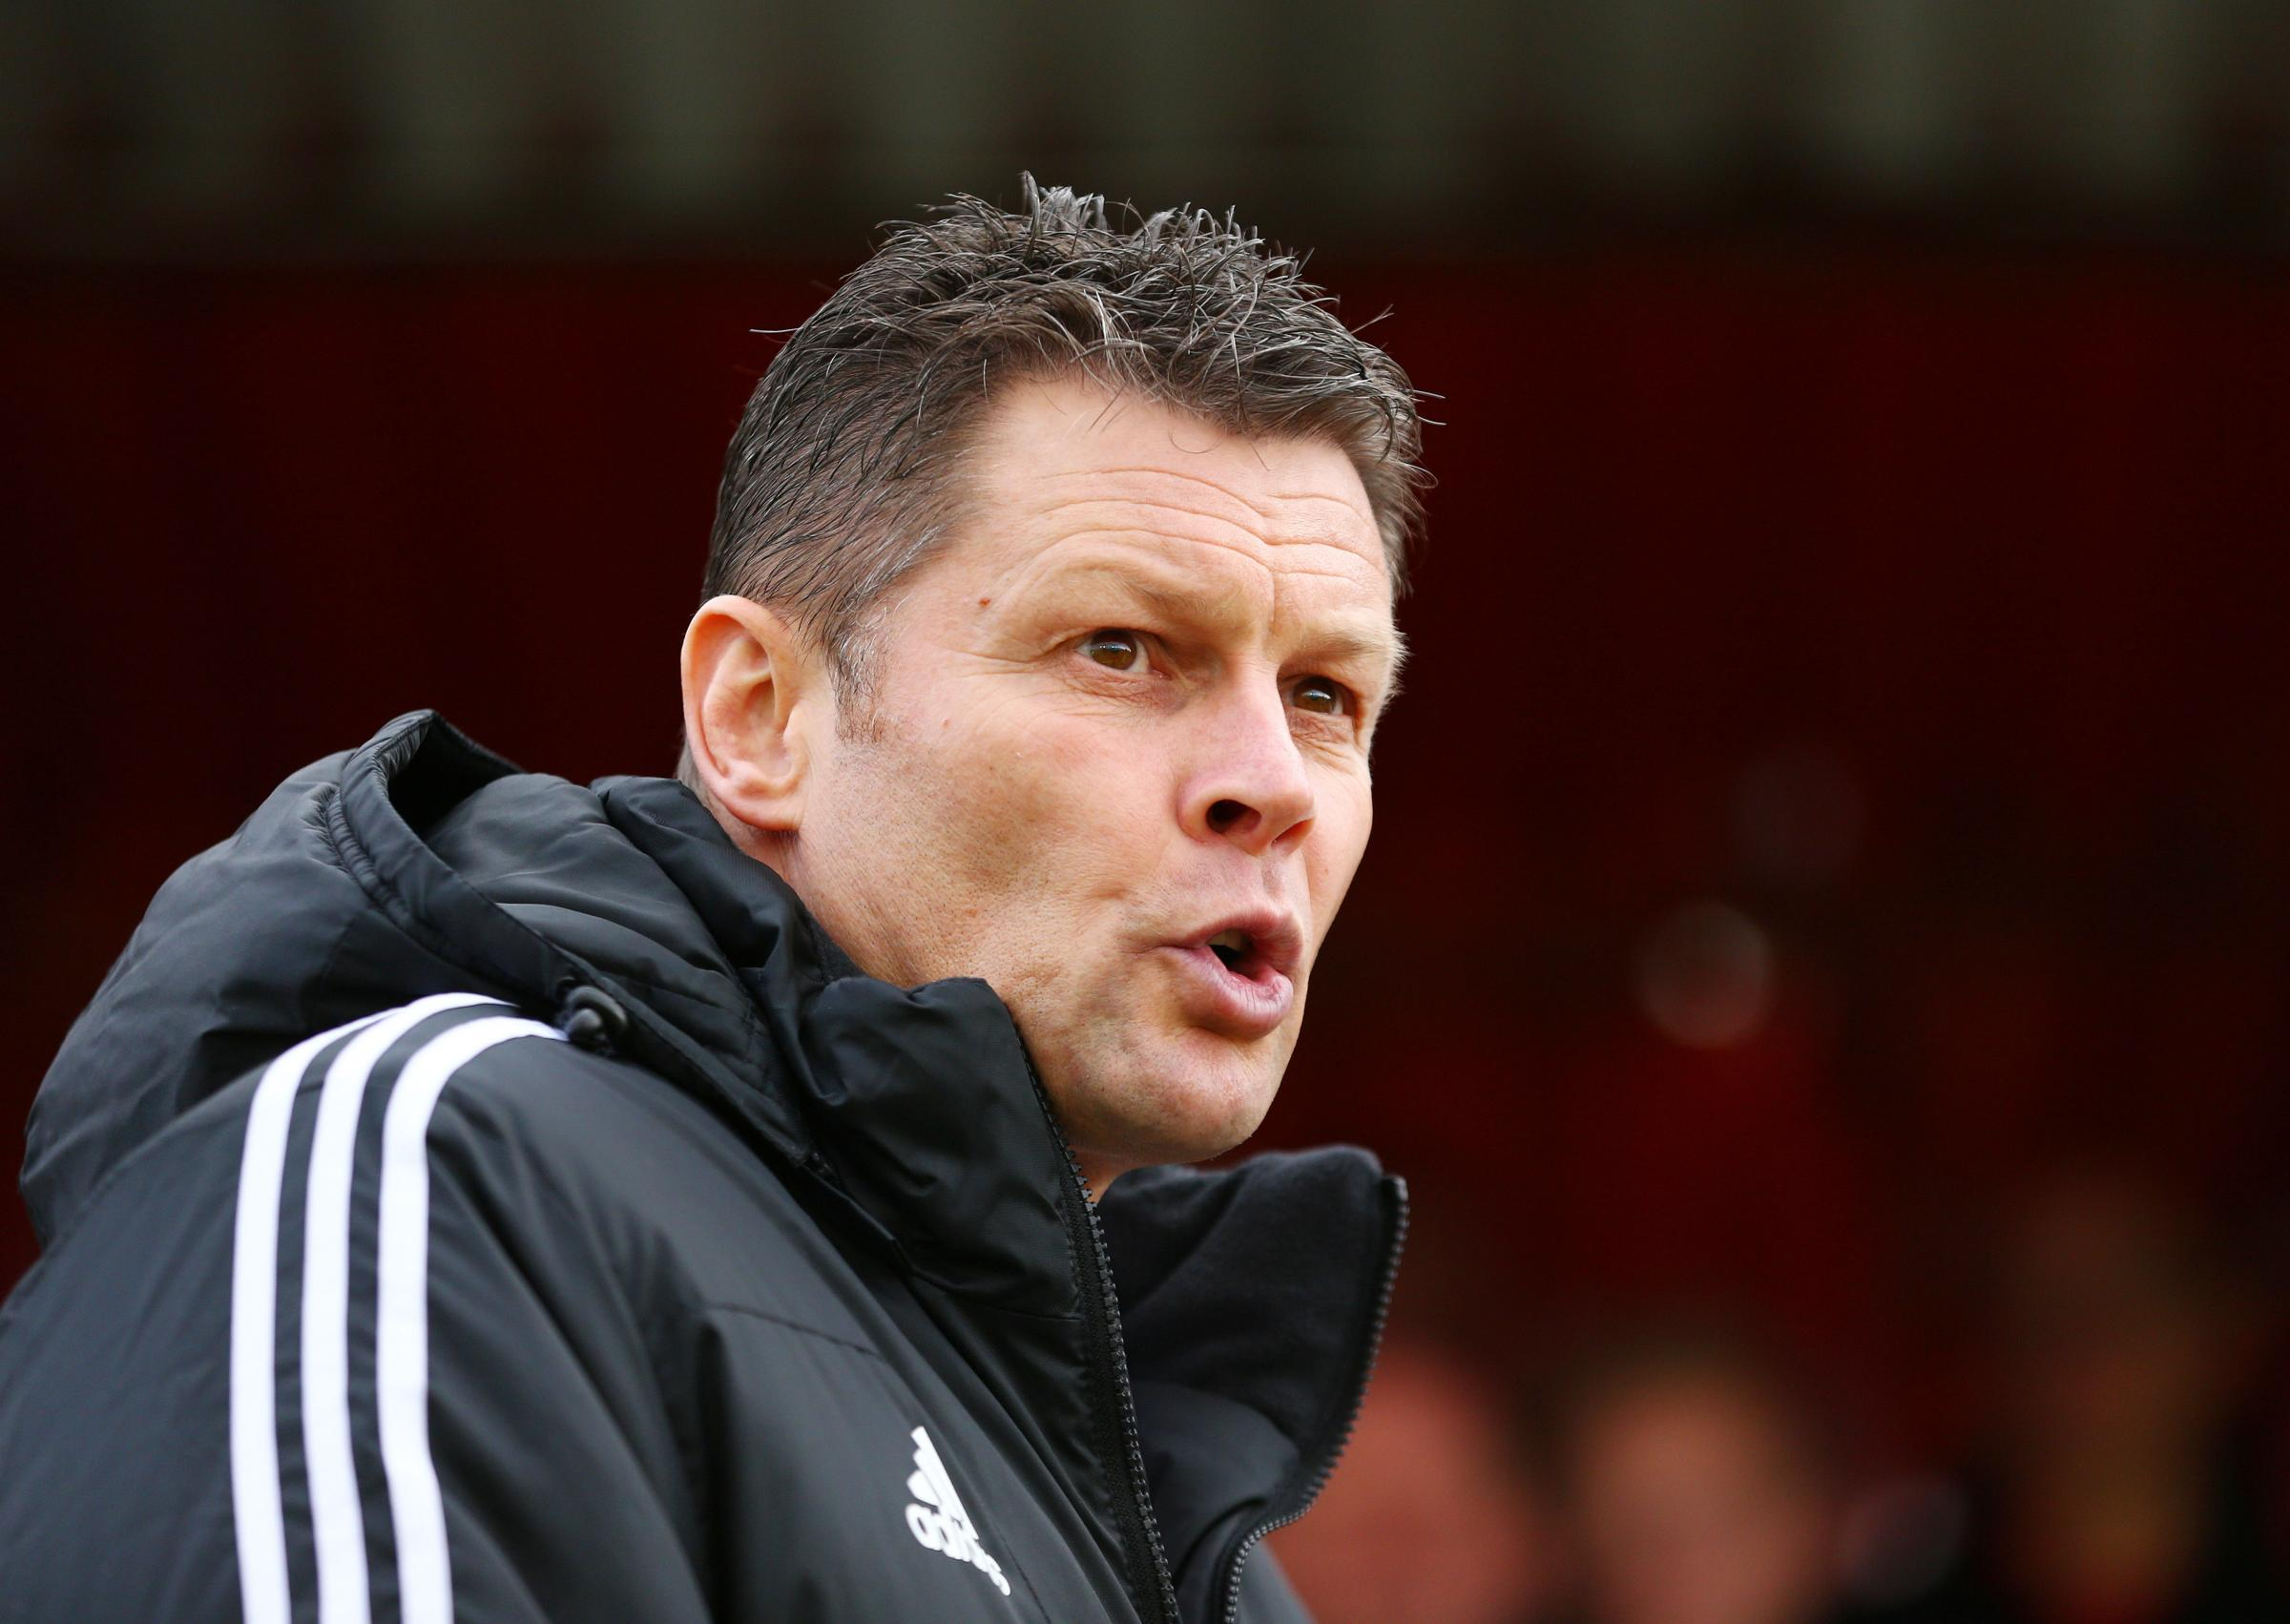 Steve Cotterill has lifted Bristol City to 13th in League One